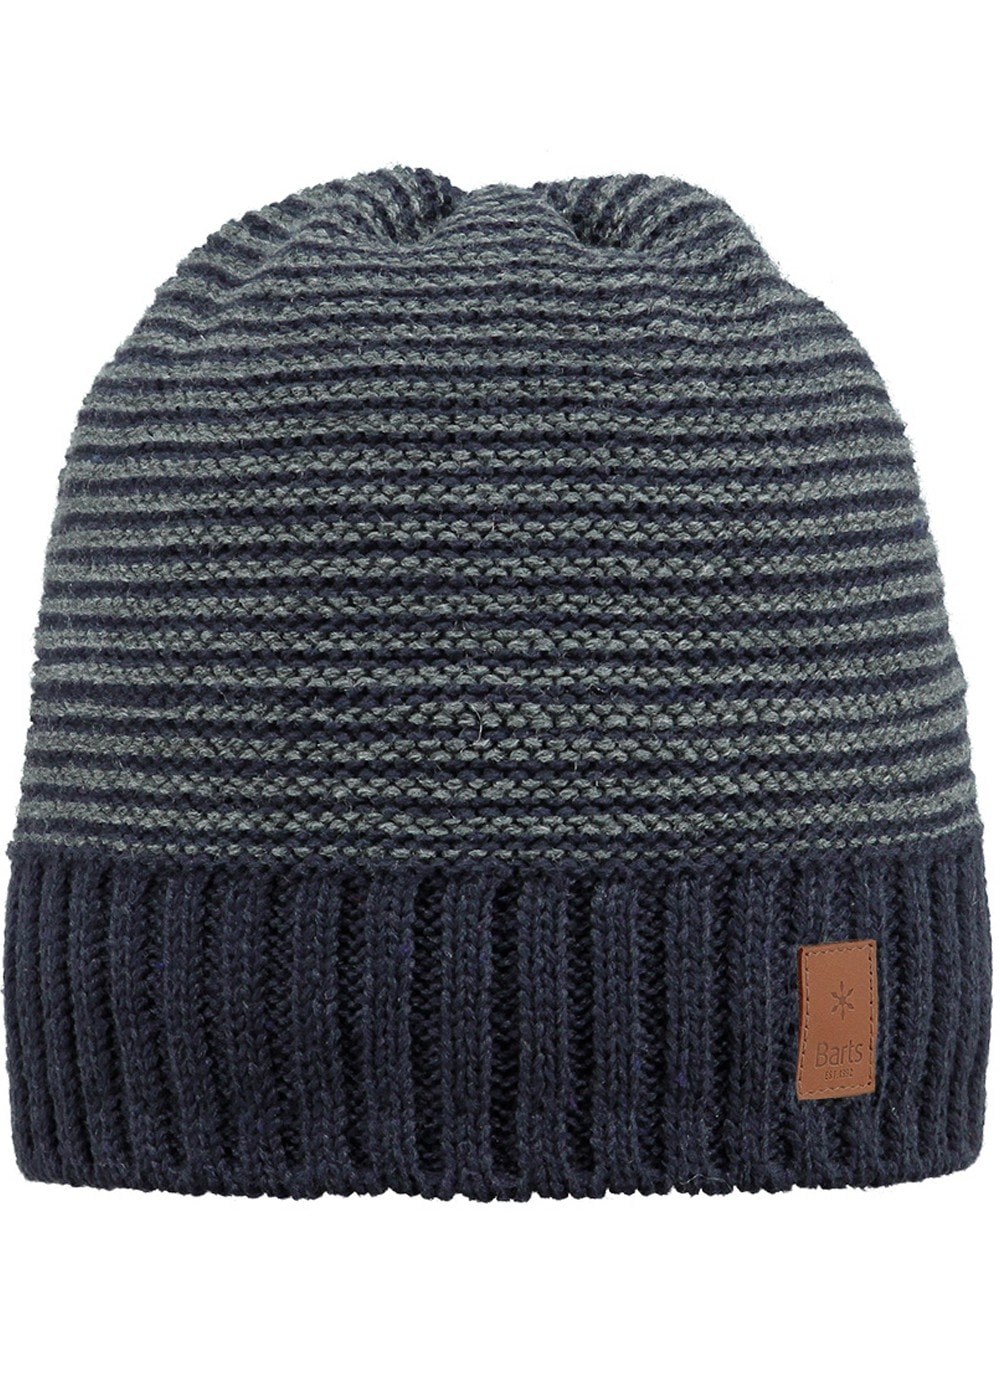 Barts David Beanie - Mens from A Hume UK f3acfb08a3e6